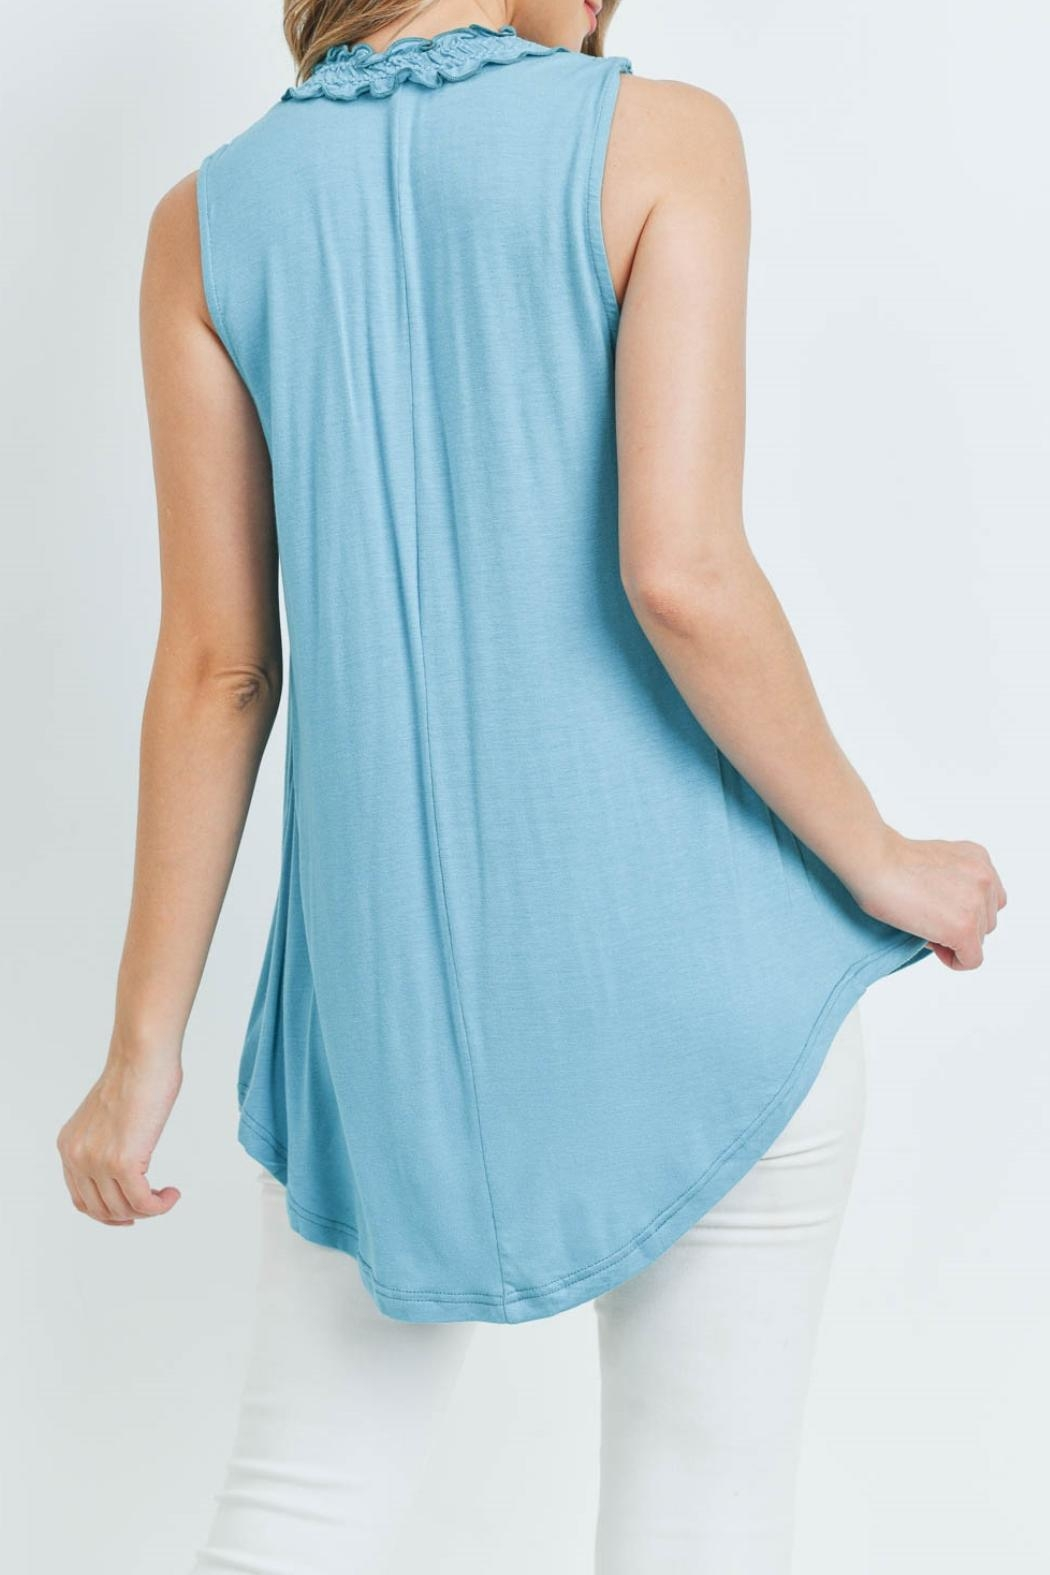 L Love Turquoise Top - Back Cropped Image